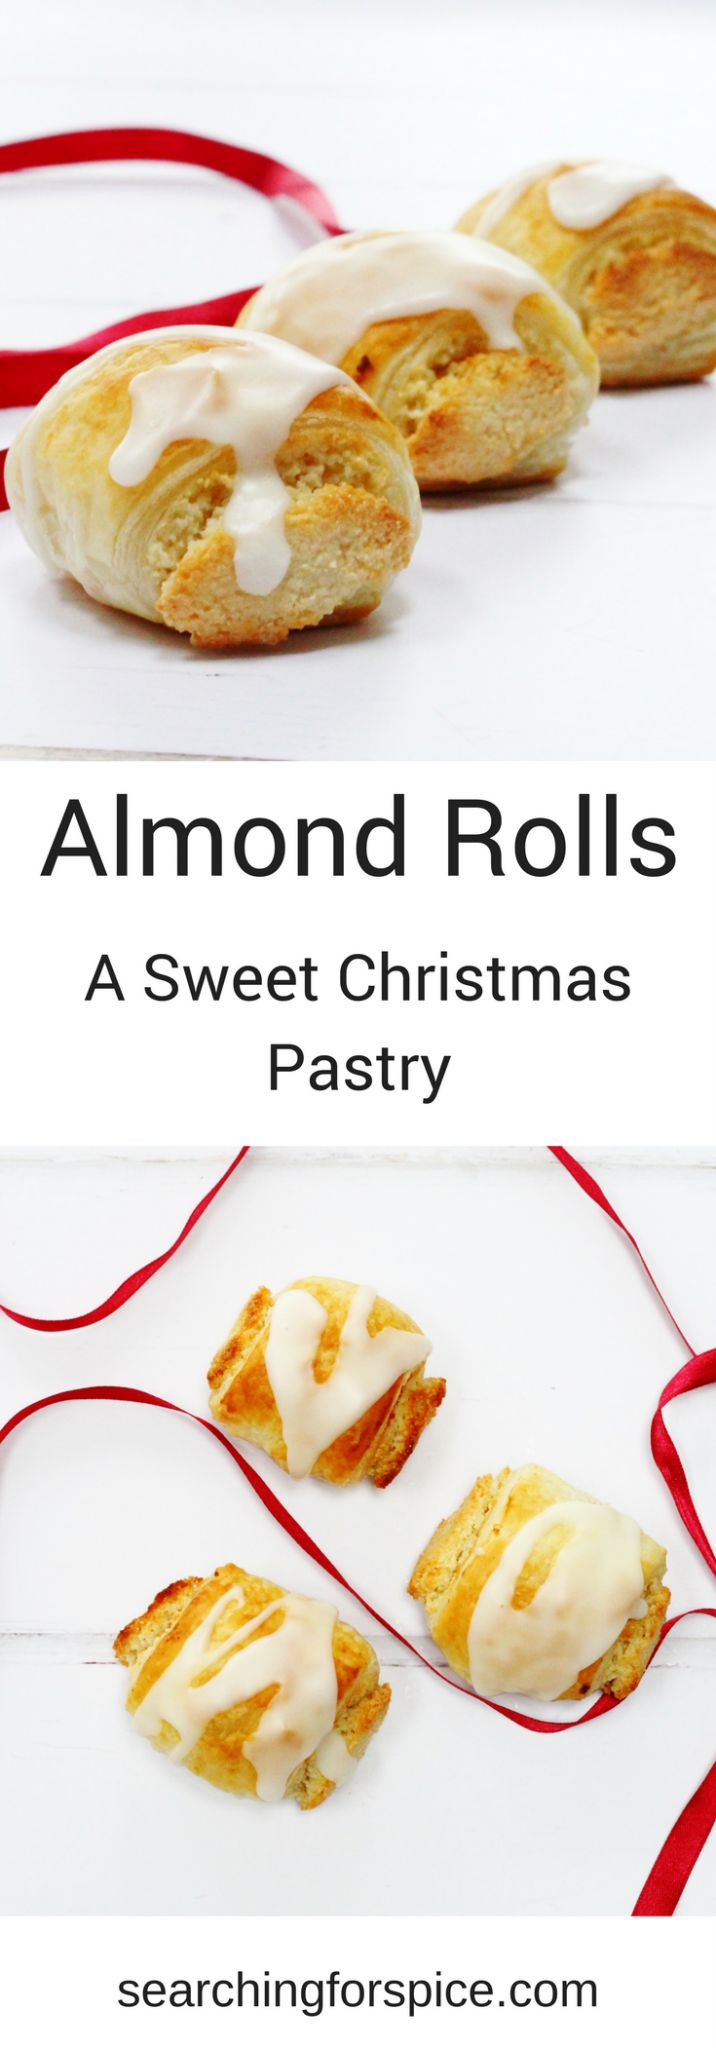 Almond rolls recipe. These sweet Christmas pastries are easy to make with ready rolled puff pastry wrapped around homemade almond paste or marzipan.